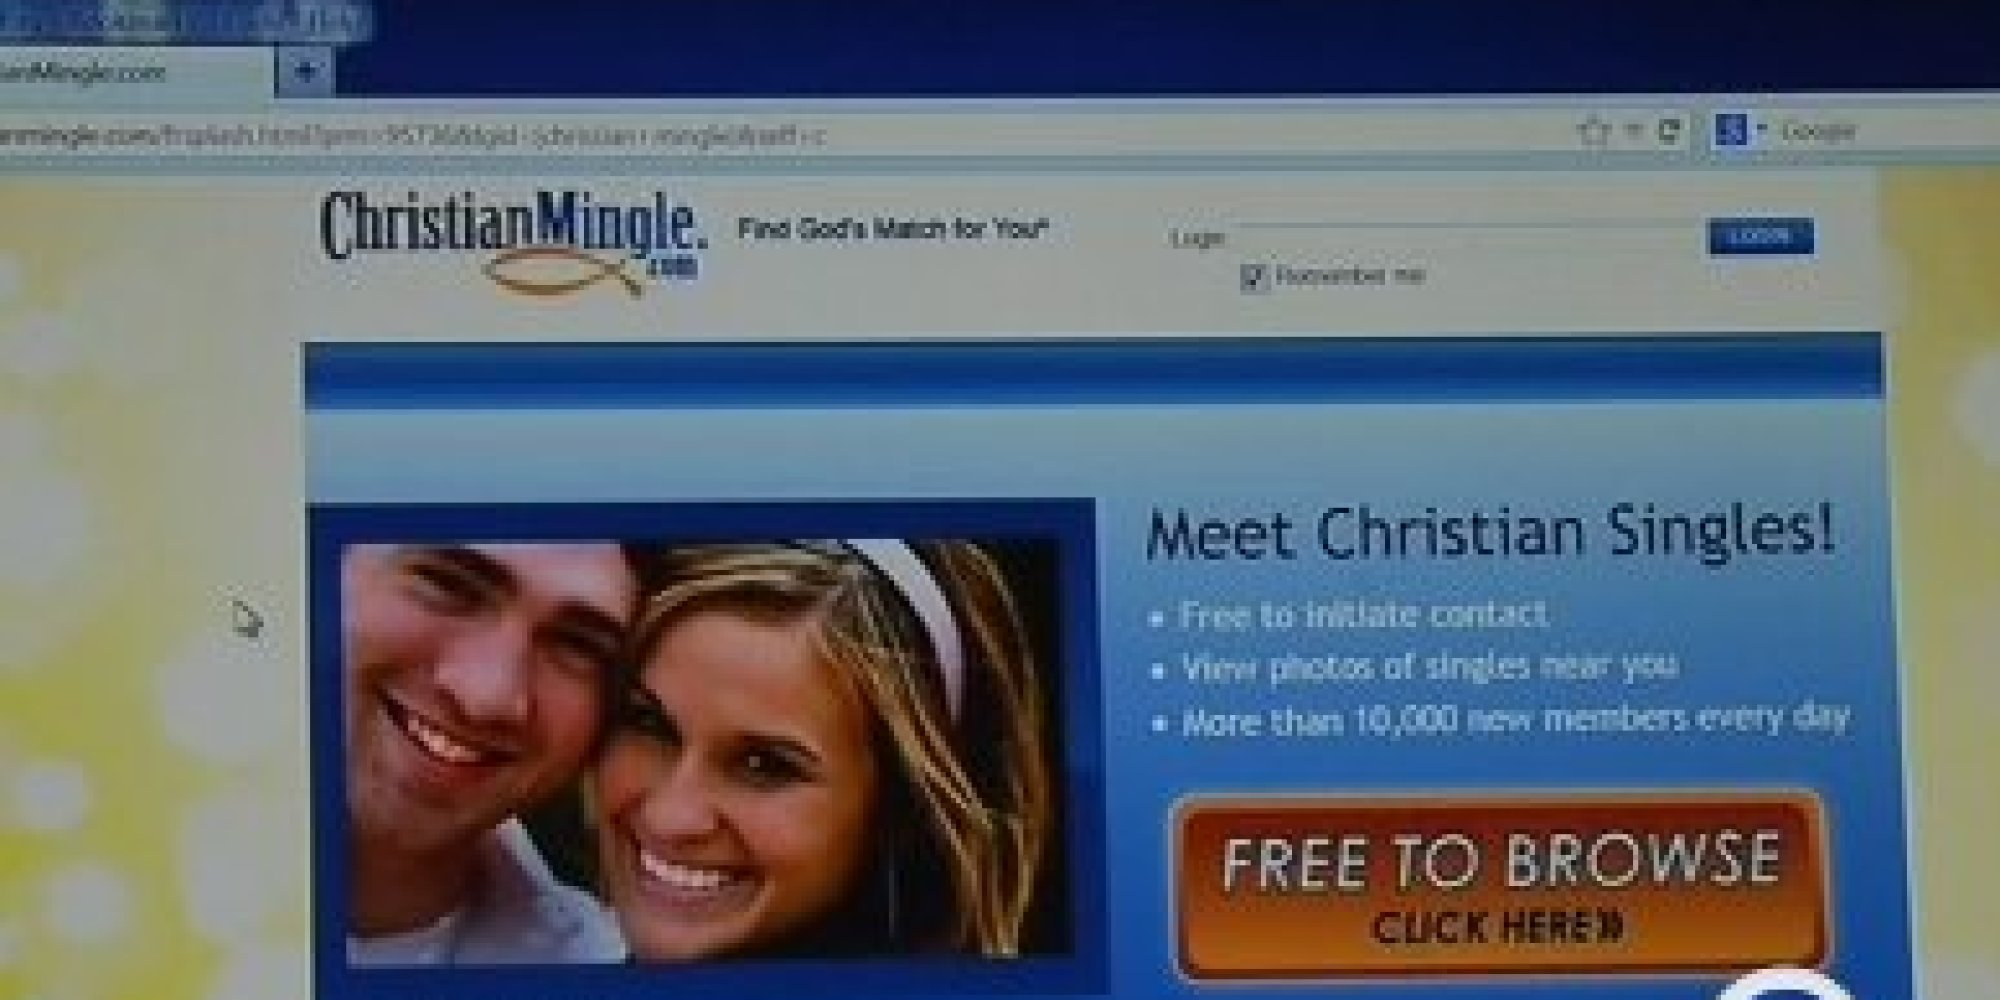 tidioute christian women dating site Free christian dating site, over 130,000 singles matched join now and enjoy a safe, clean community to meet other christian singles.